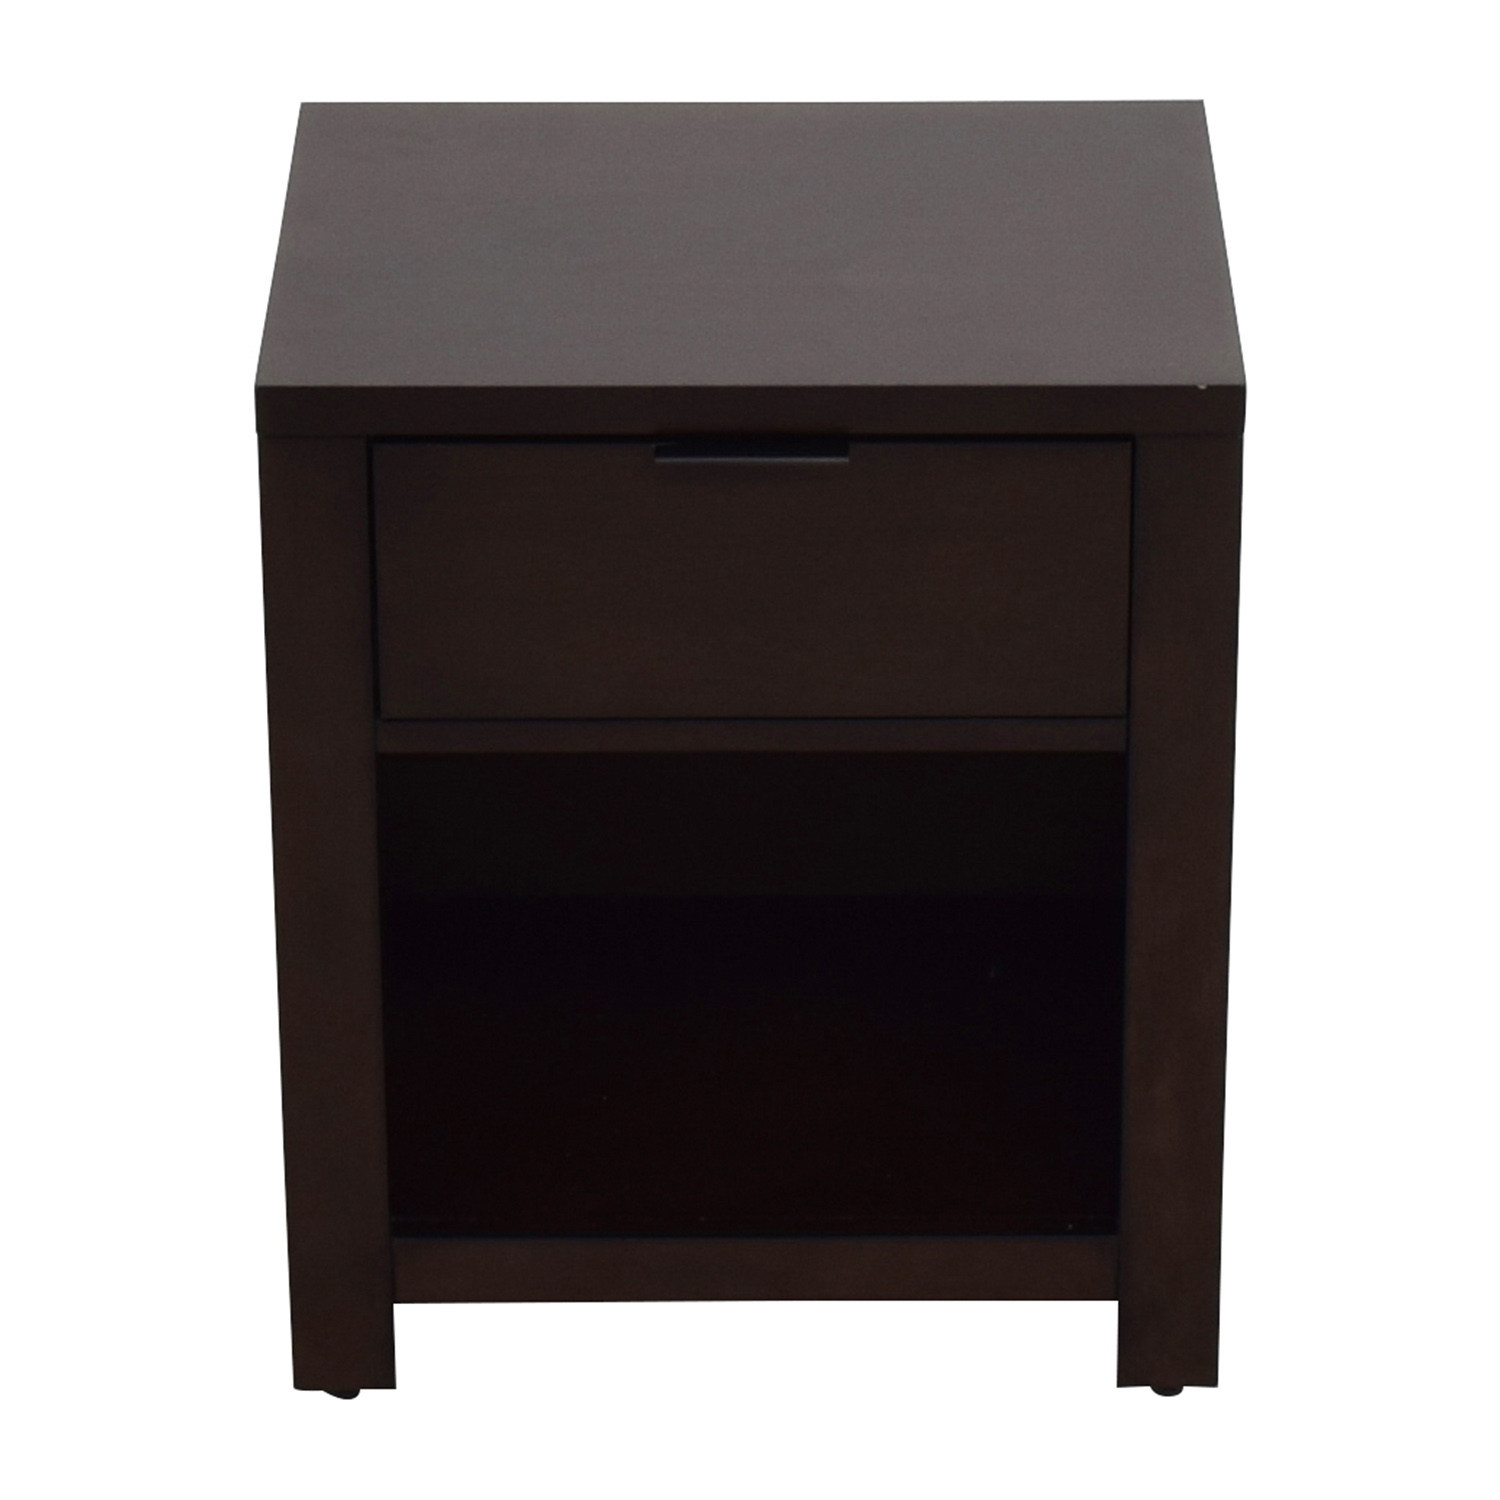 buy Macys Macys Tribeca Nightstand in Mocha online